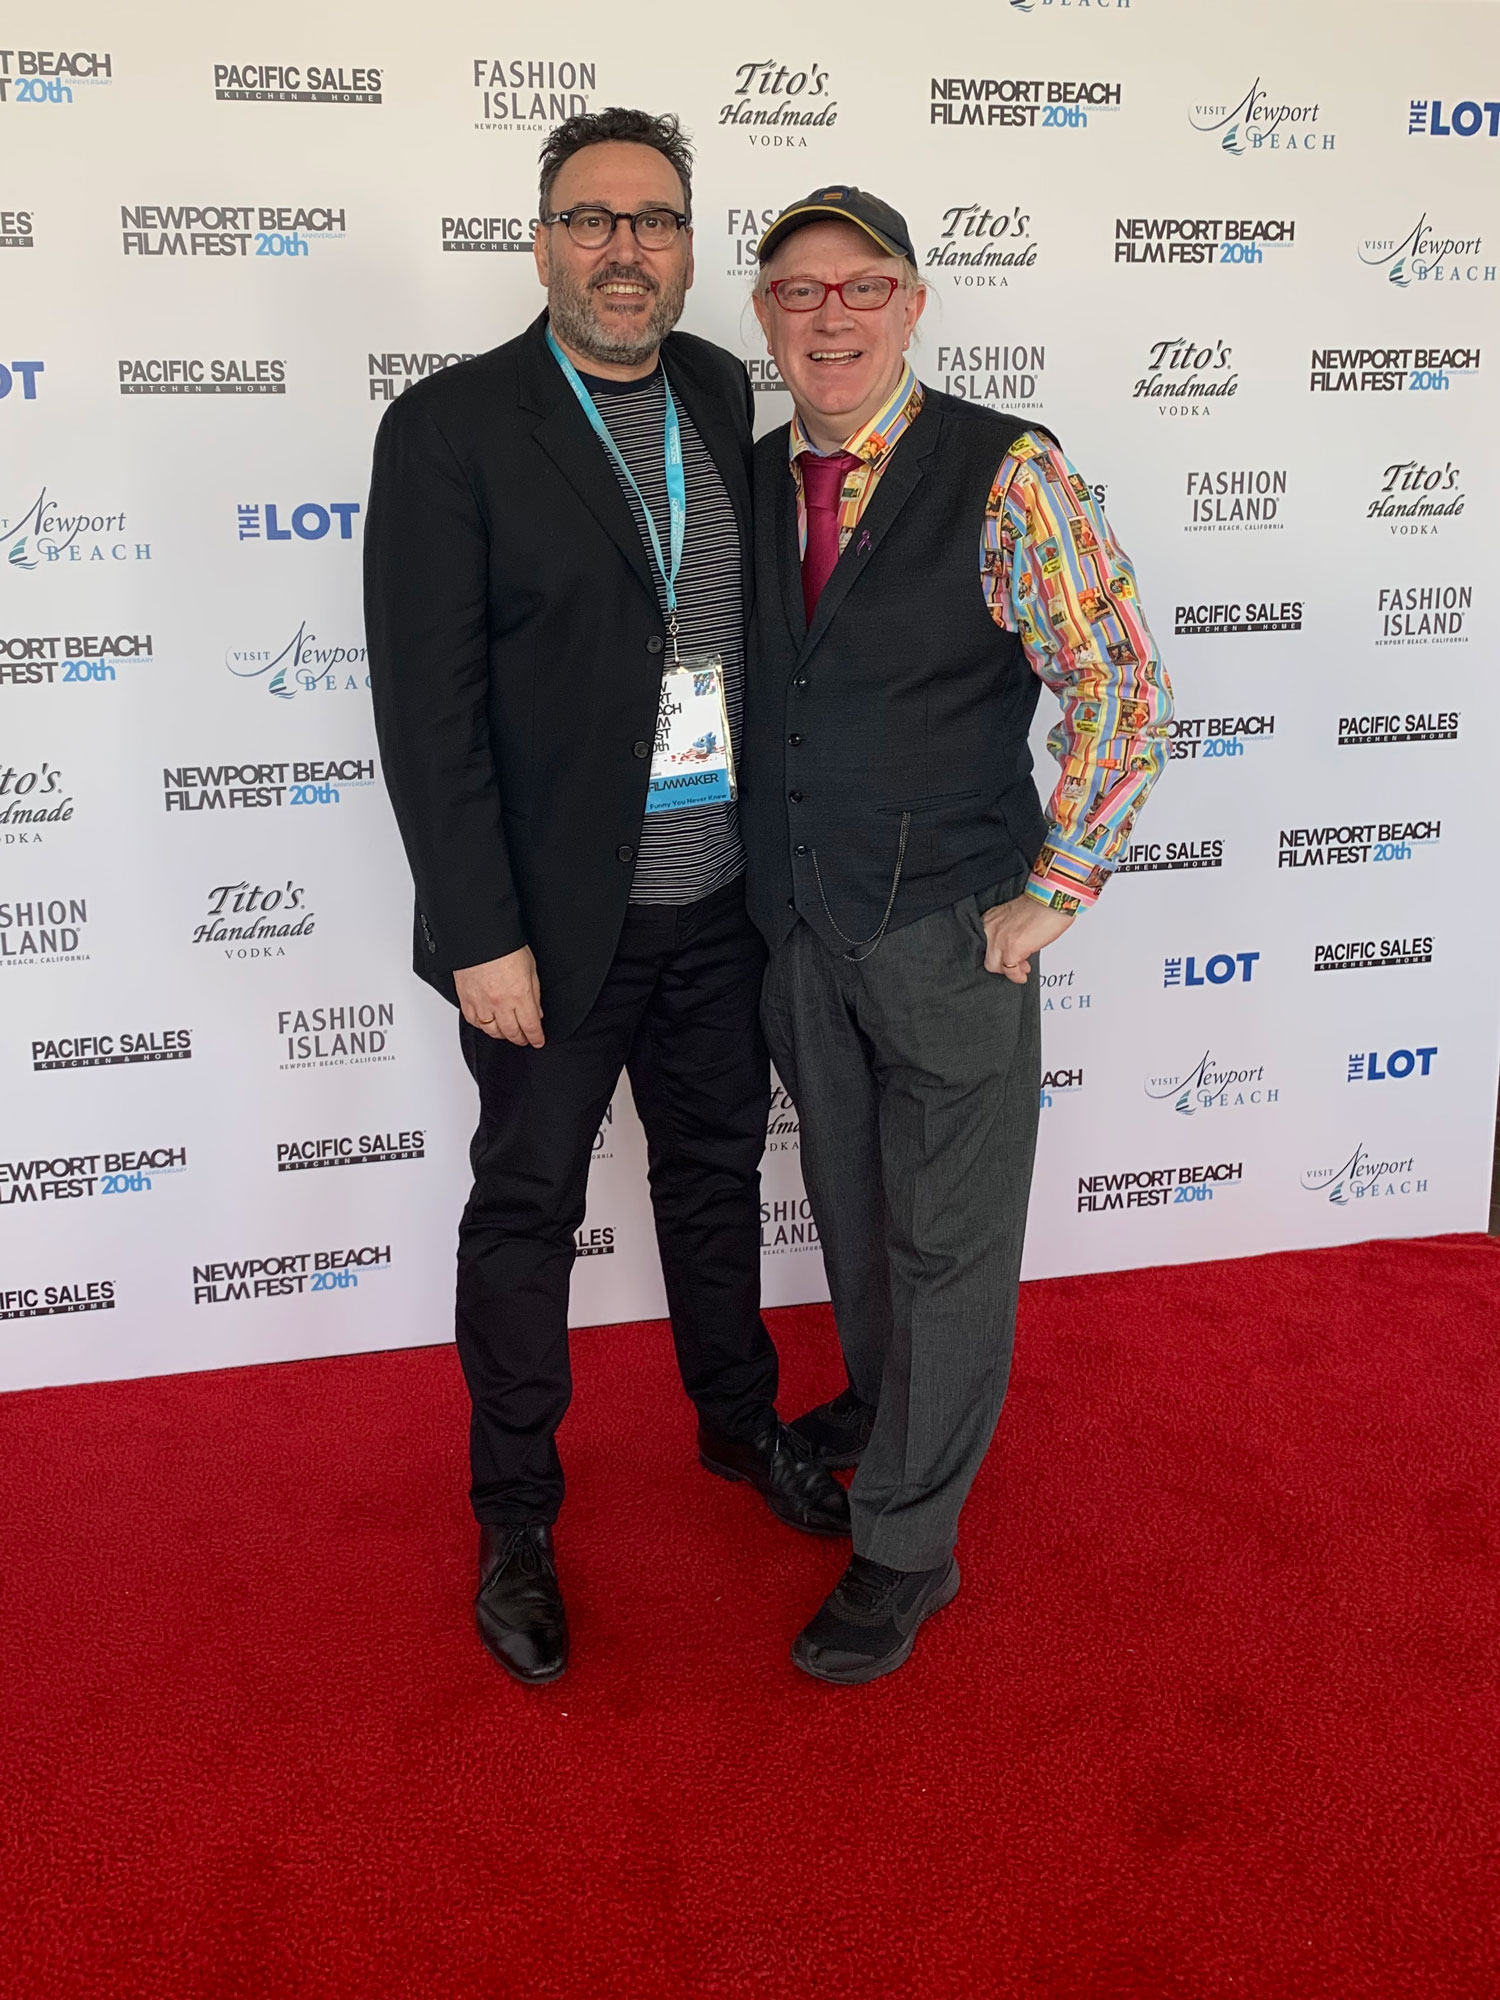 Andrew Hunt and Colin Goudie on the red carpet at the 20th annual Newport Beach Film Festival